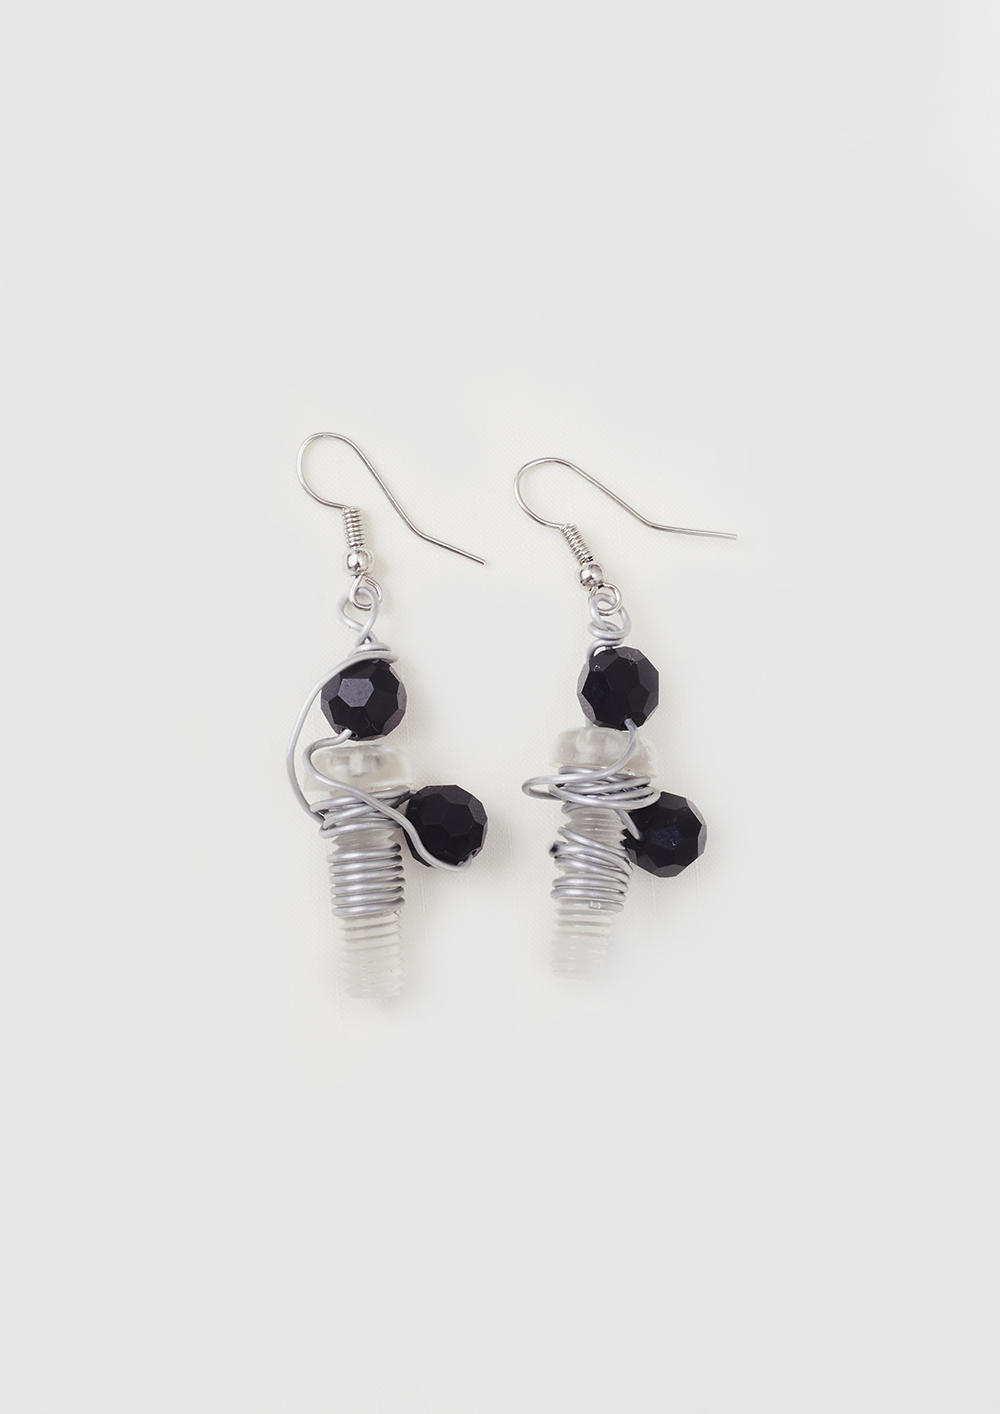 Blackoutlabel earrings nute 501